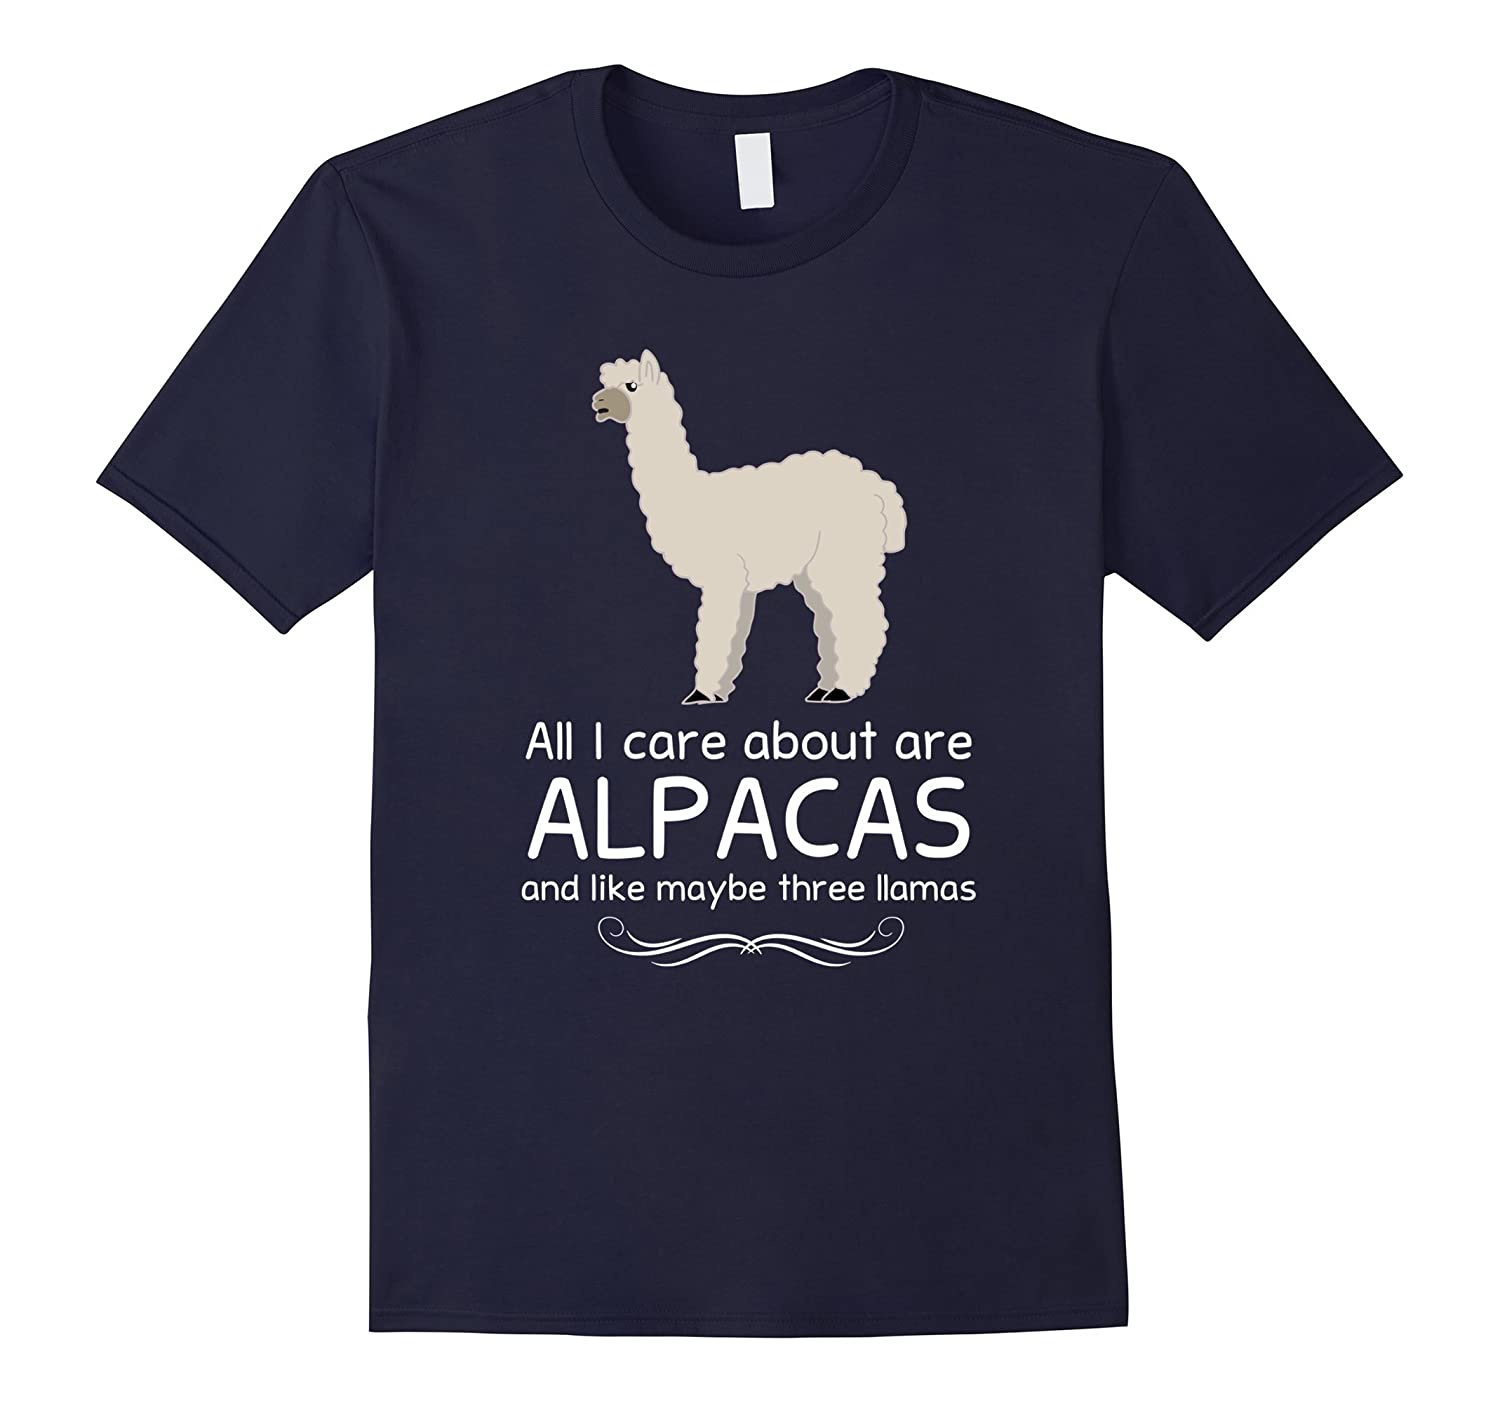 All I Care about are Alpacas and Maybe like Three Llamas-Art